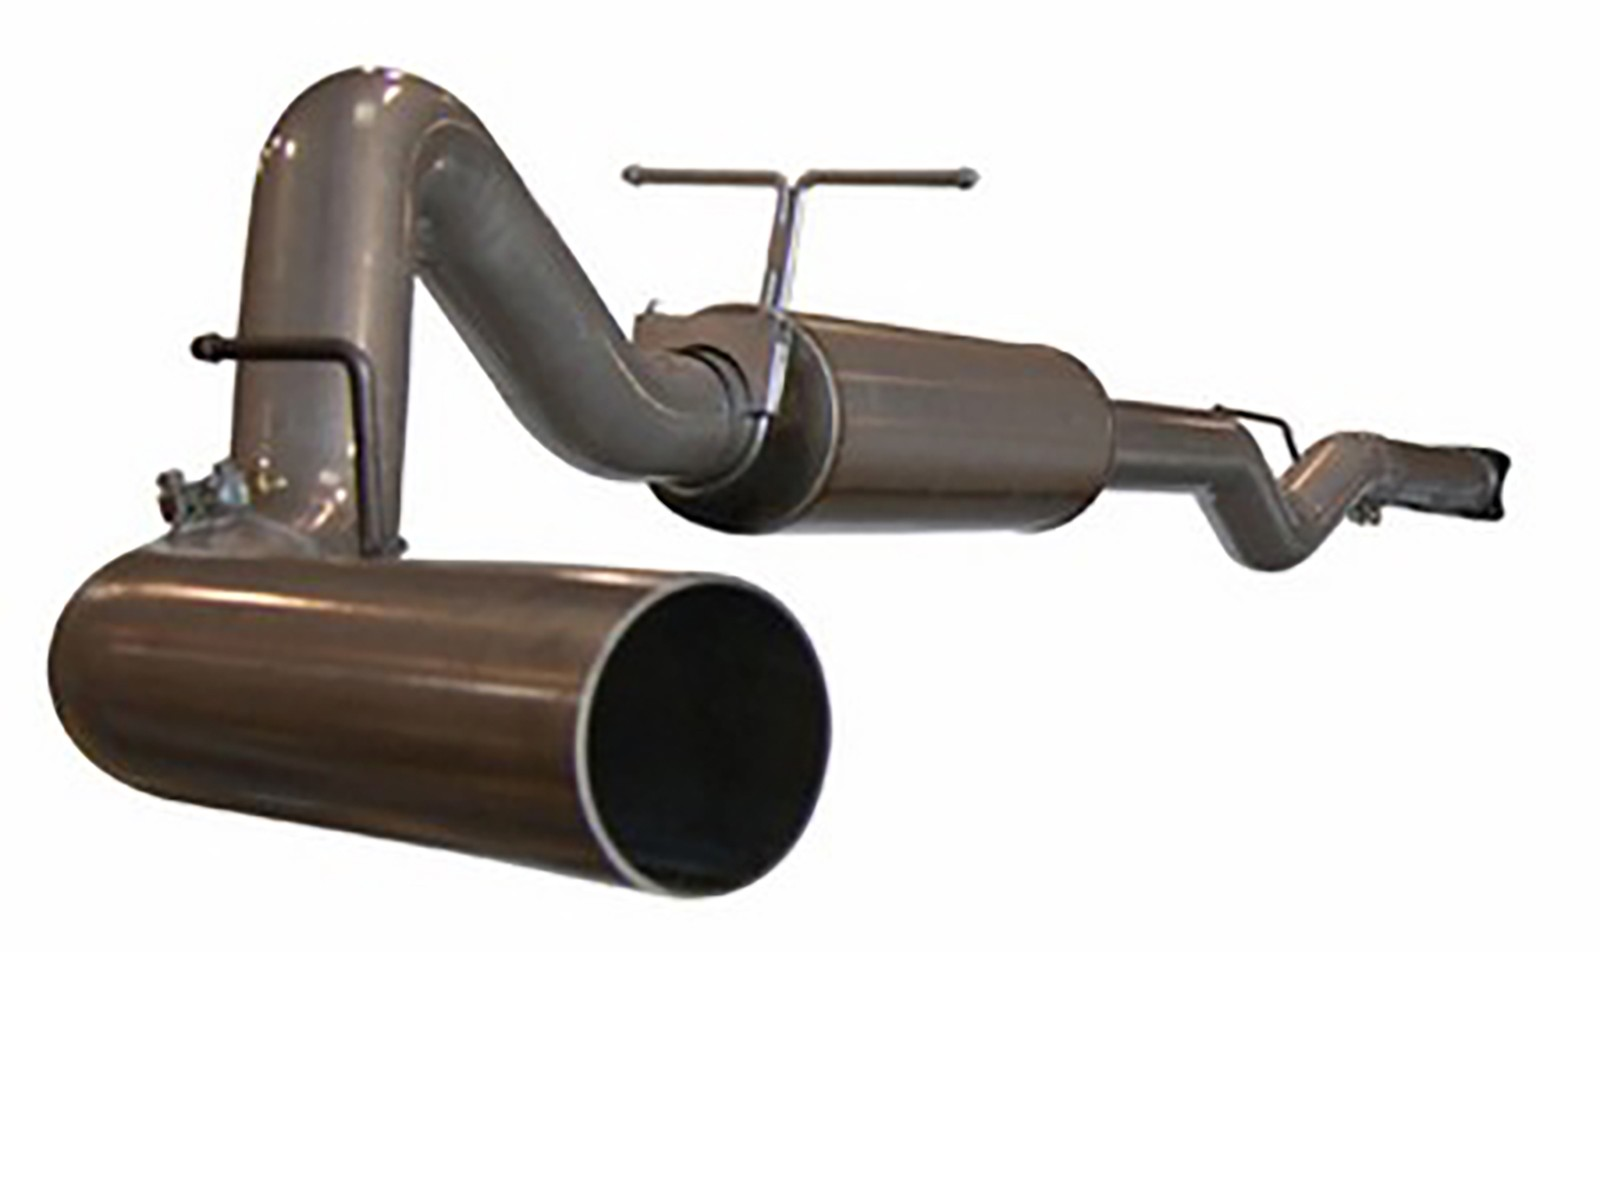 "aFe POWER 49-14001 Large Bore-HD 4"" 409 Stainless Steel Cat-Back Exhaust System"